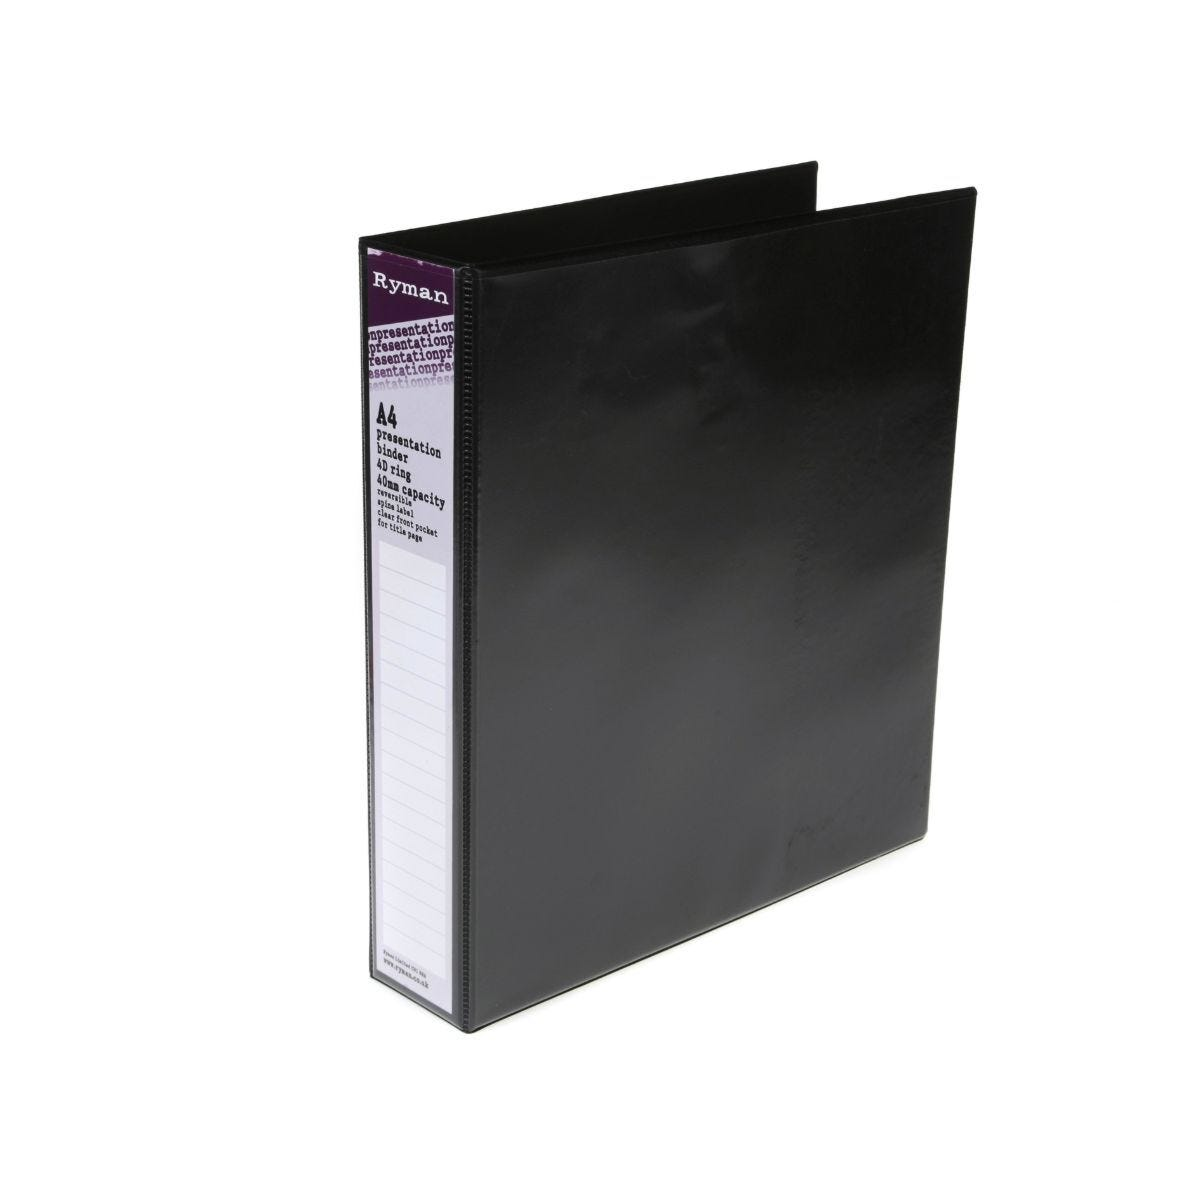 Ryman Presentation Ring Binder A4 4D Ring 40mm Black